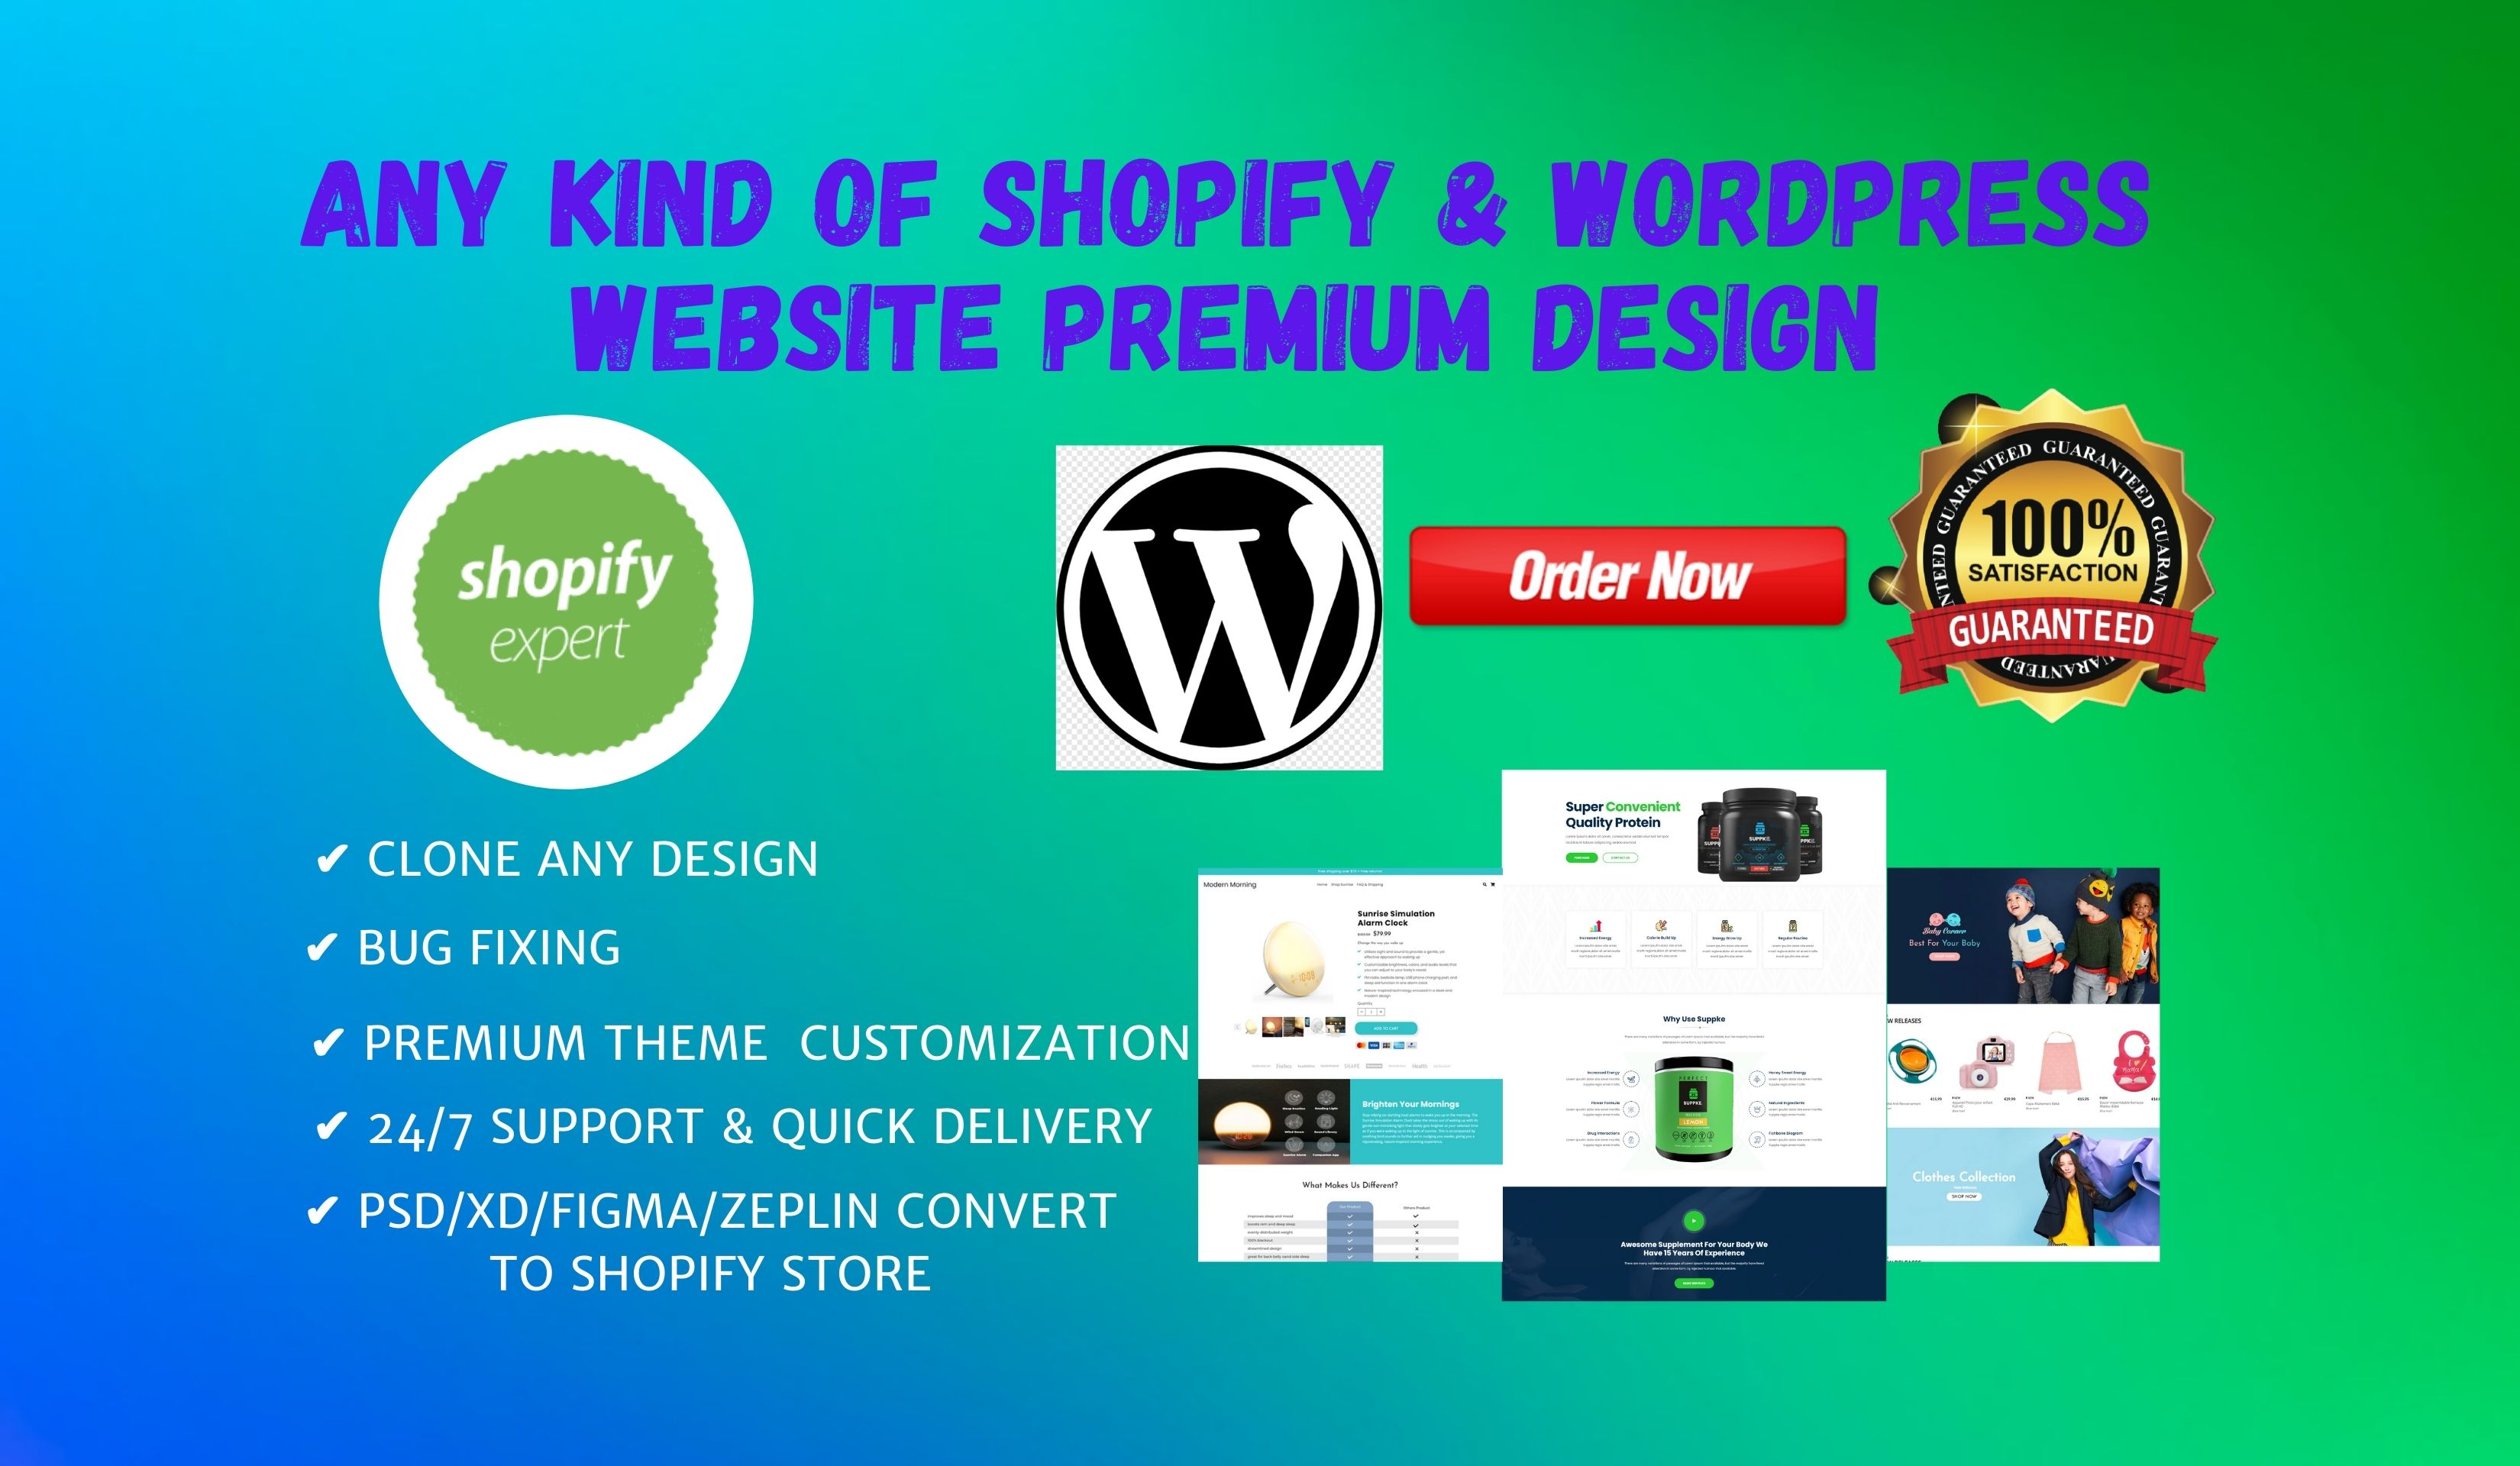 i will create premium Shopify and WordPress websites as your need